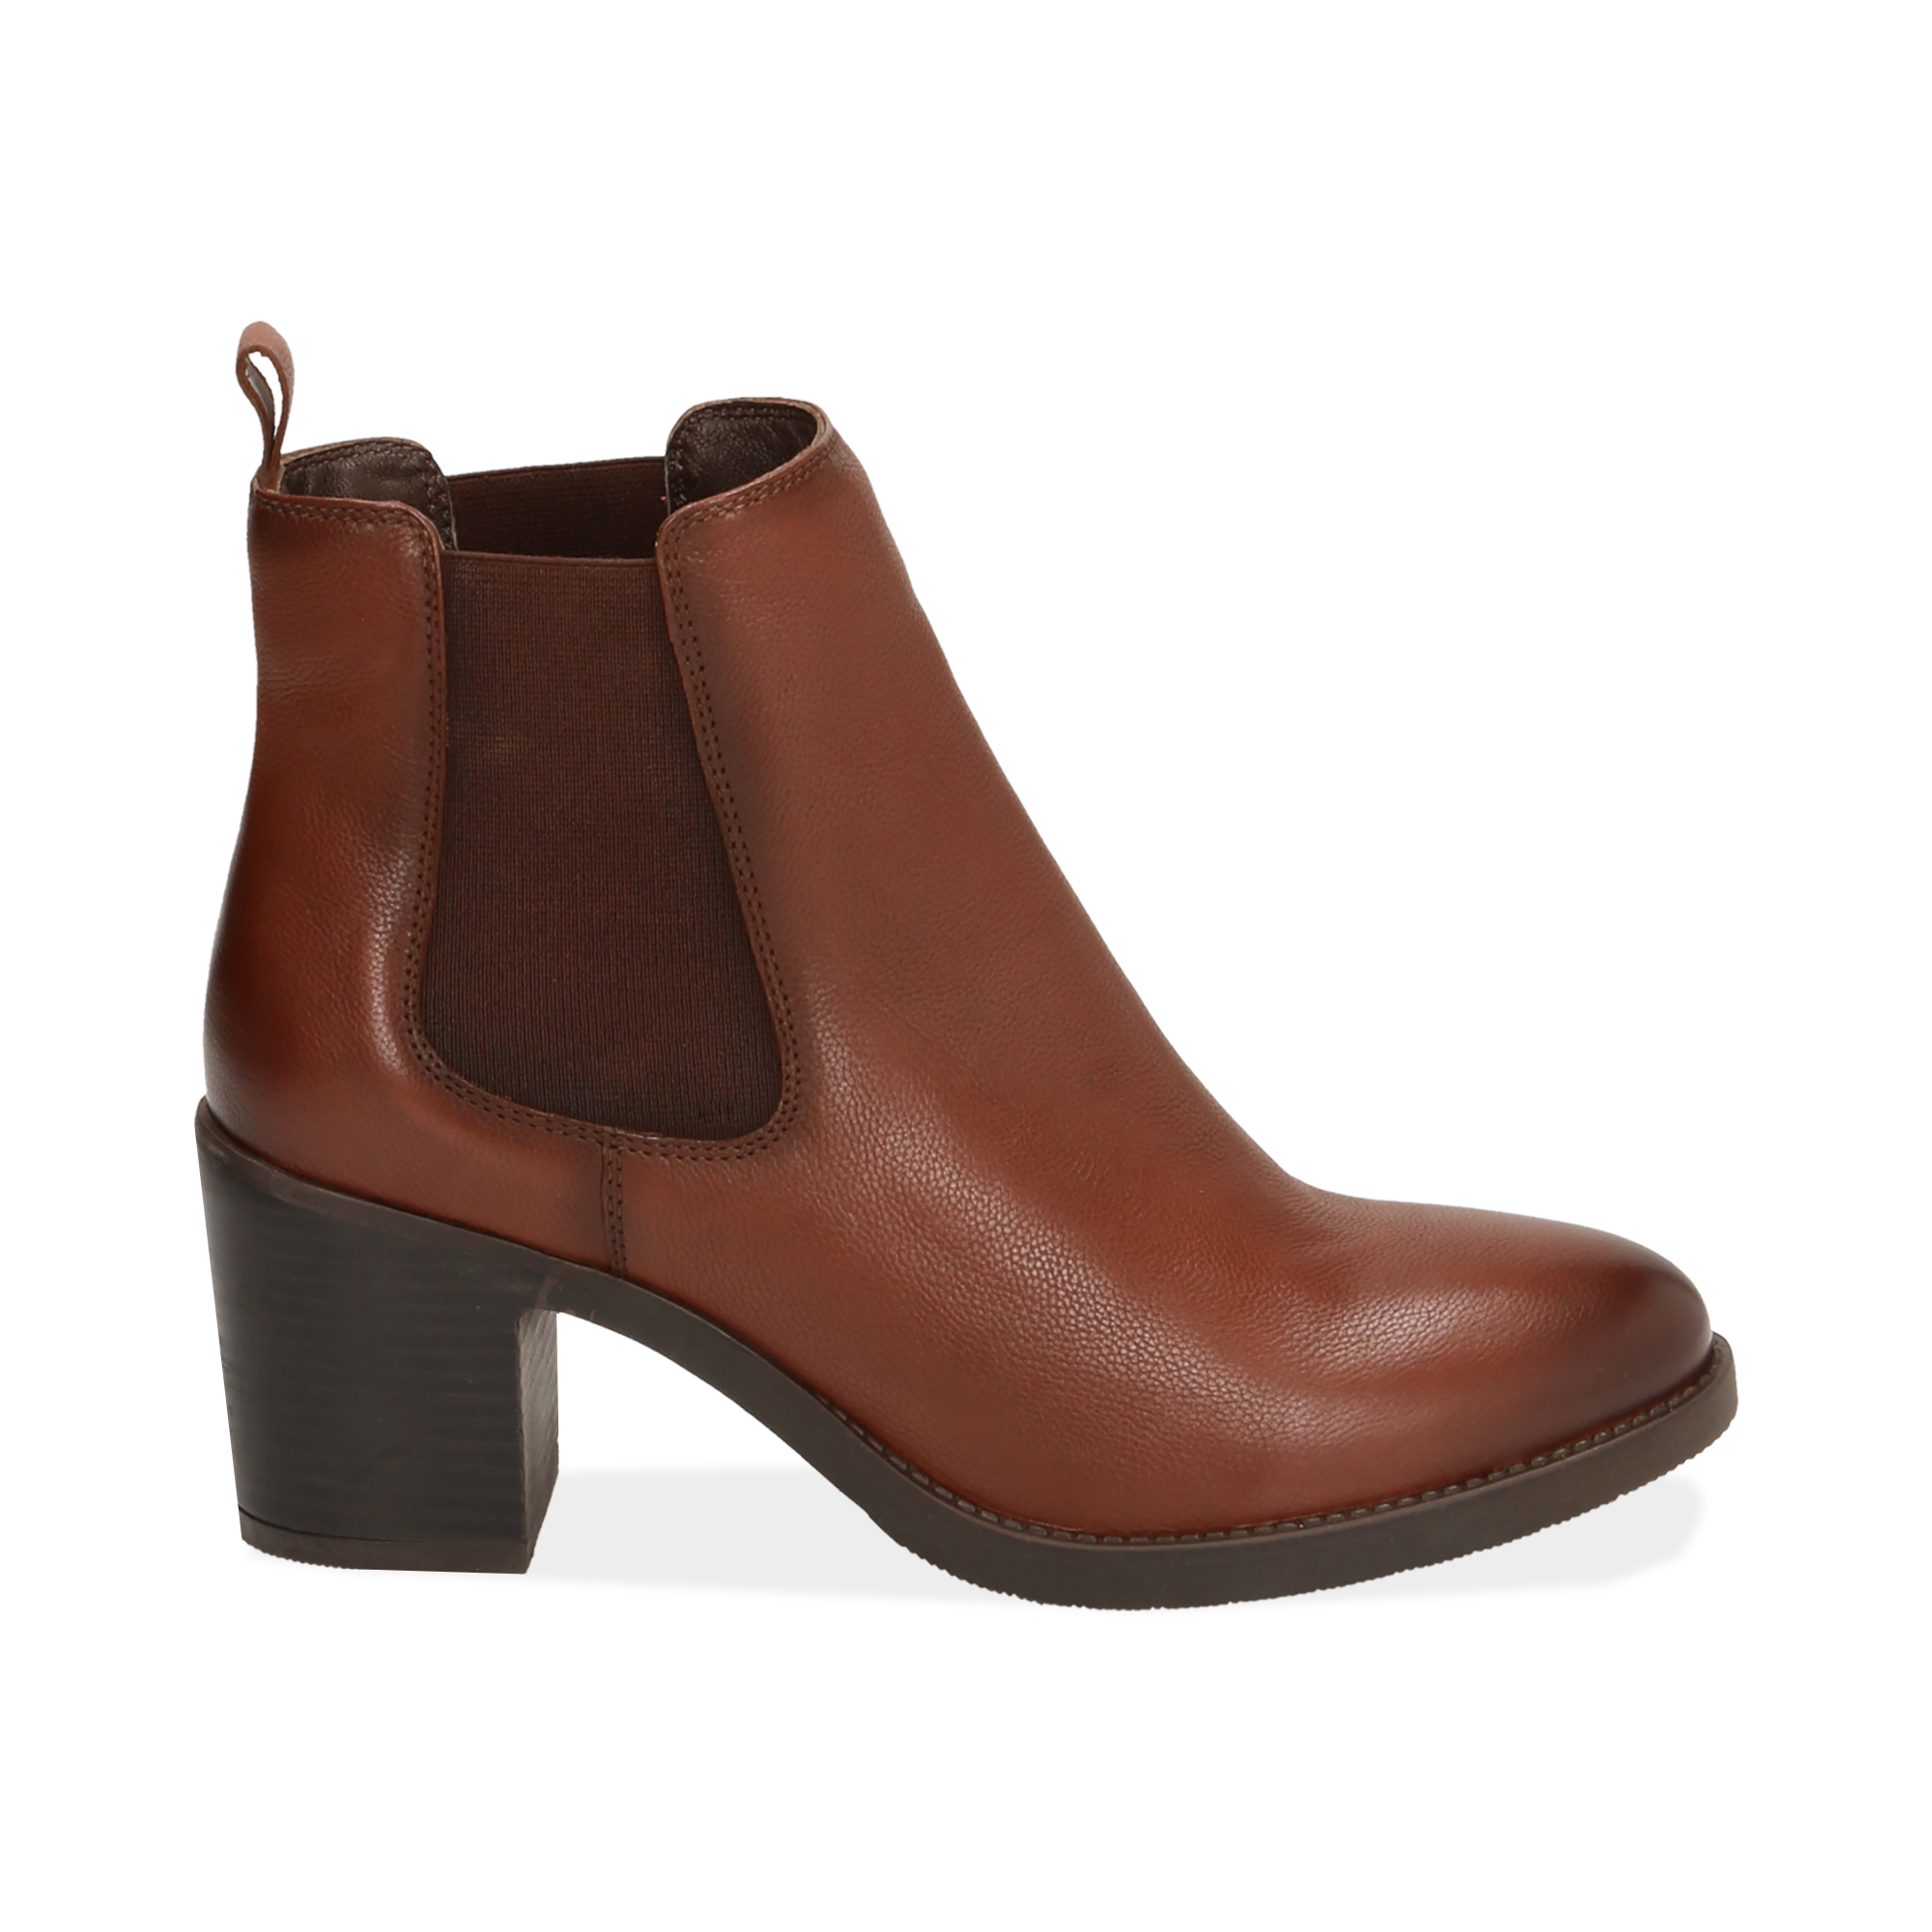 Ankle boots cuoio in pelle, tacco 4,50 cm